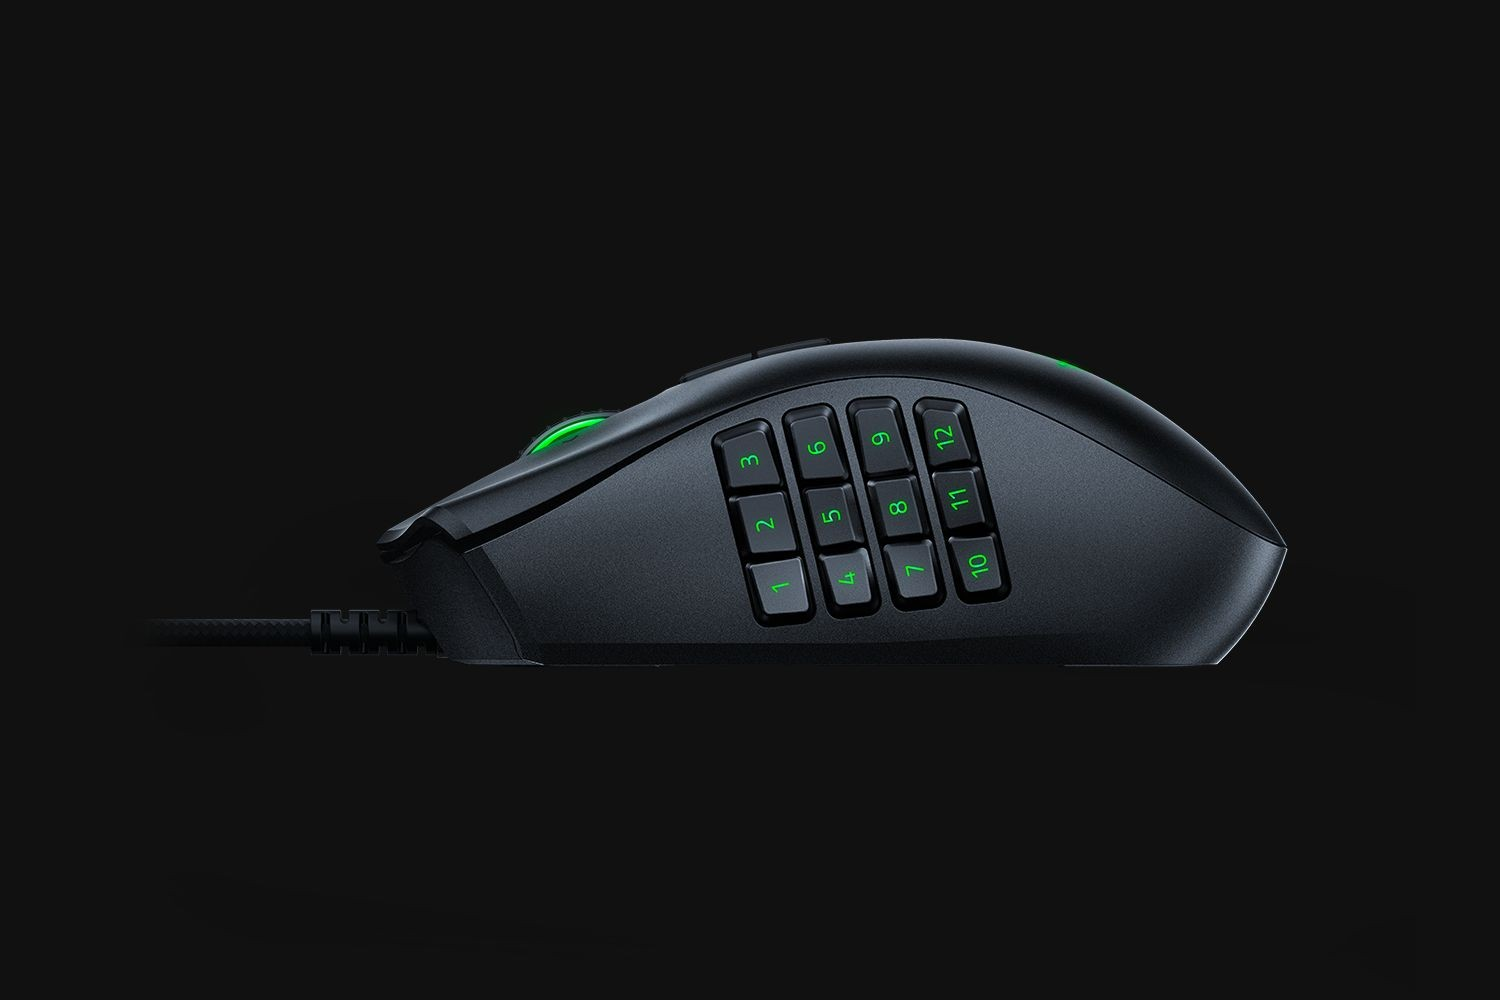 94a7862e68d image else for Razer Naga Trinity - Multi-color Wired Mmo Gaming Mouse Rz01-